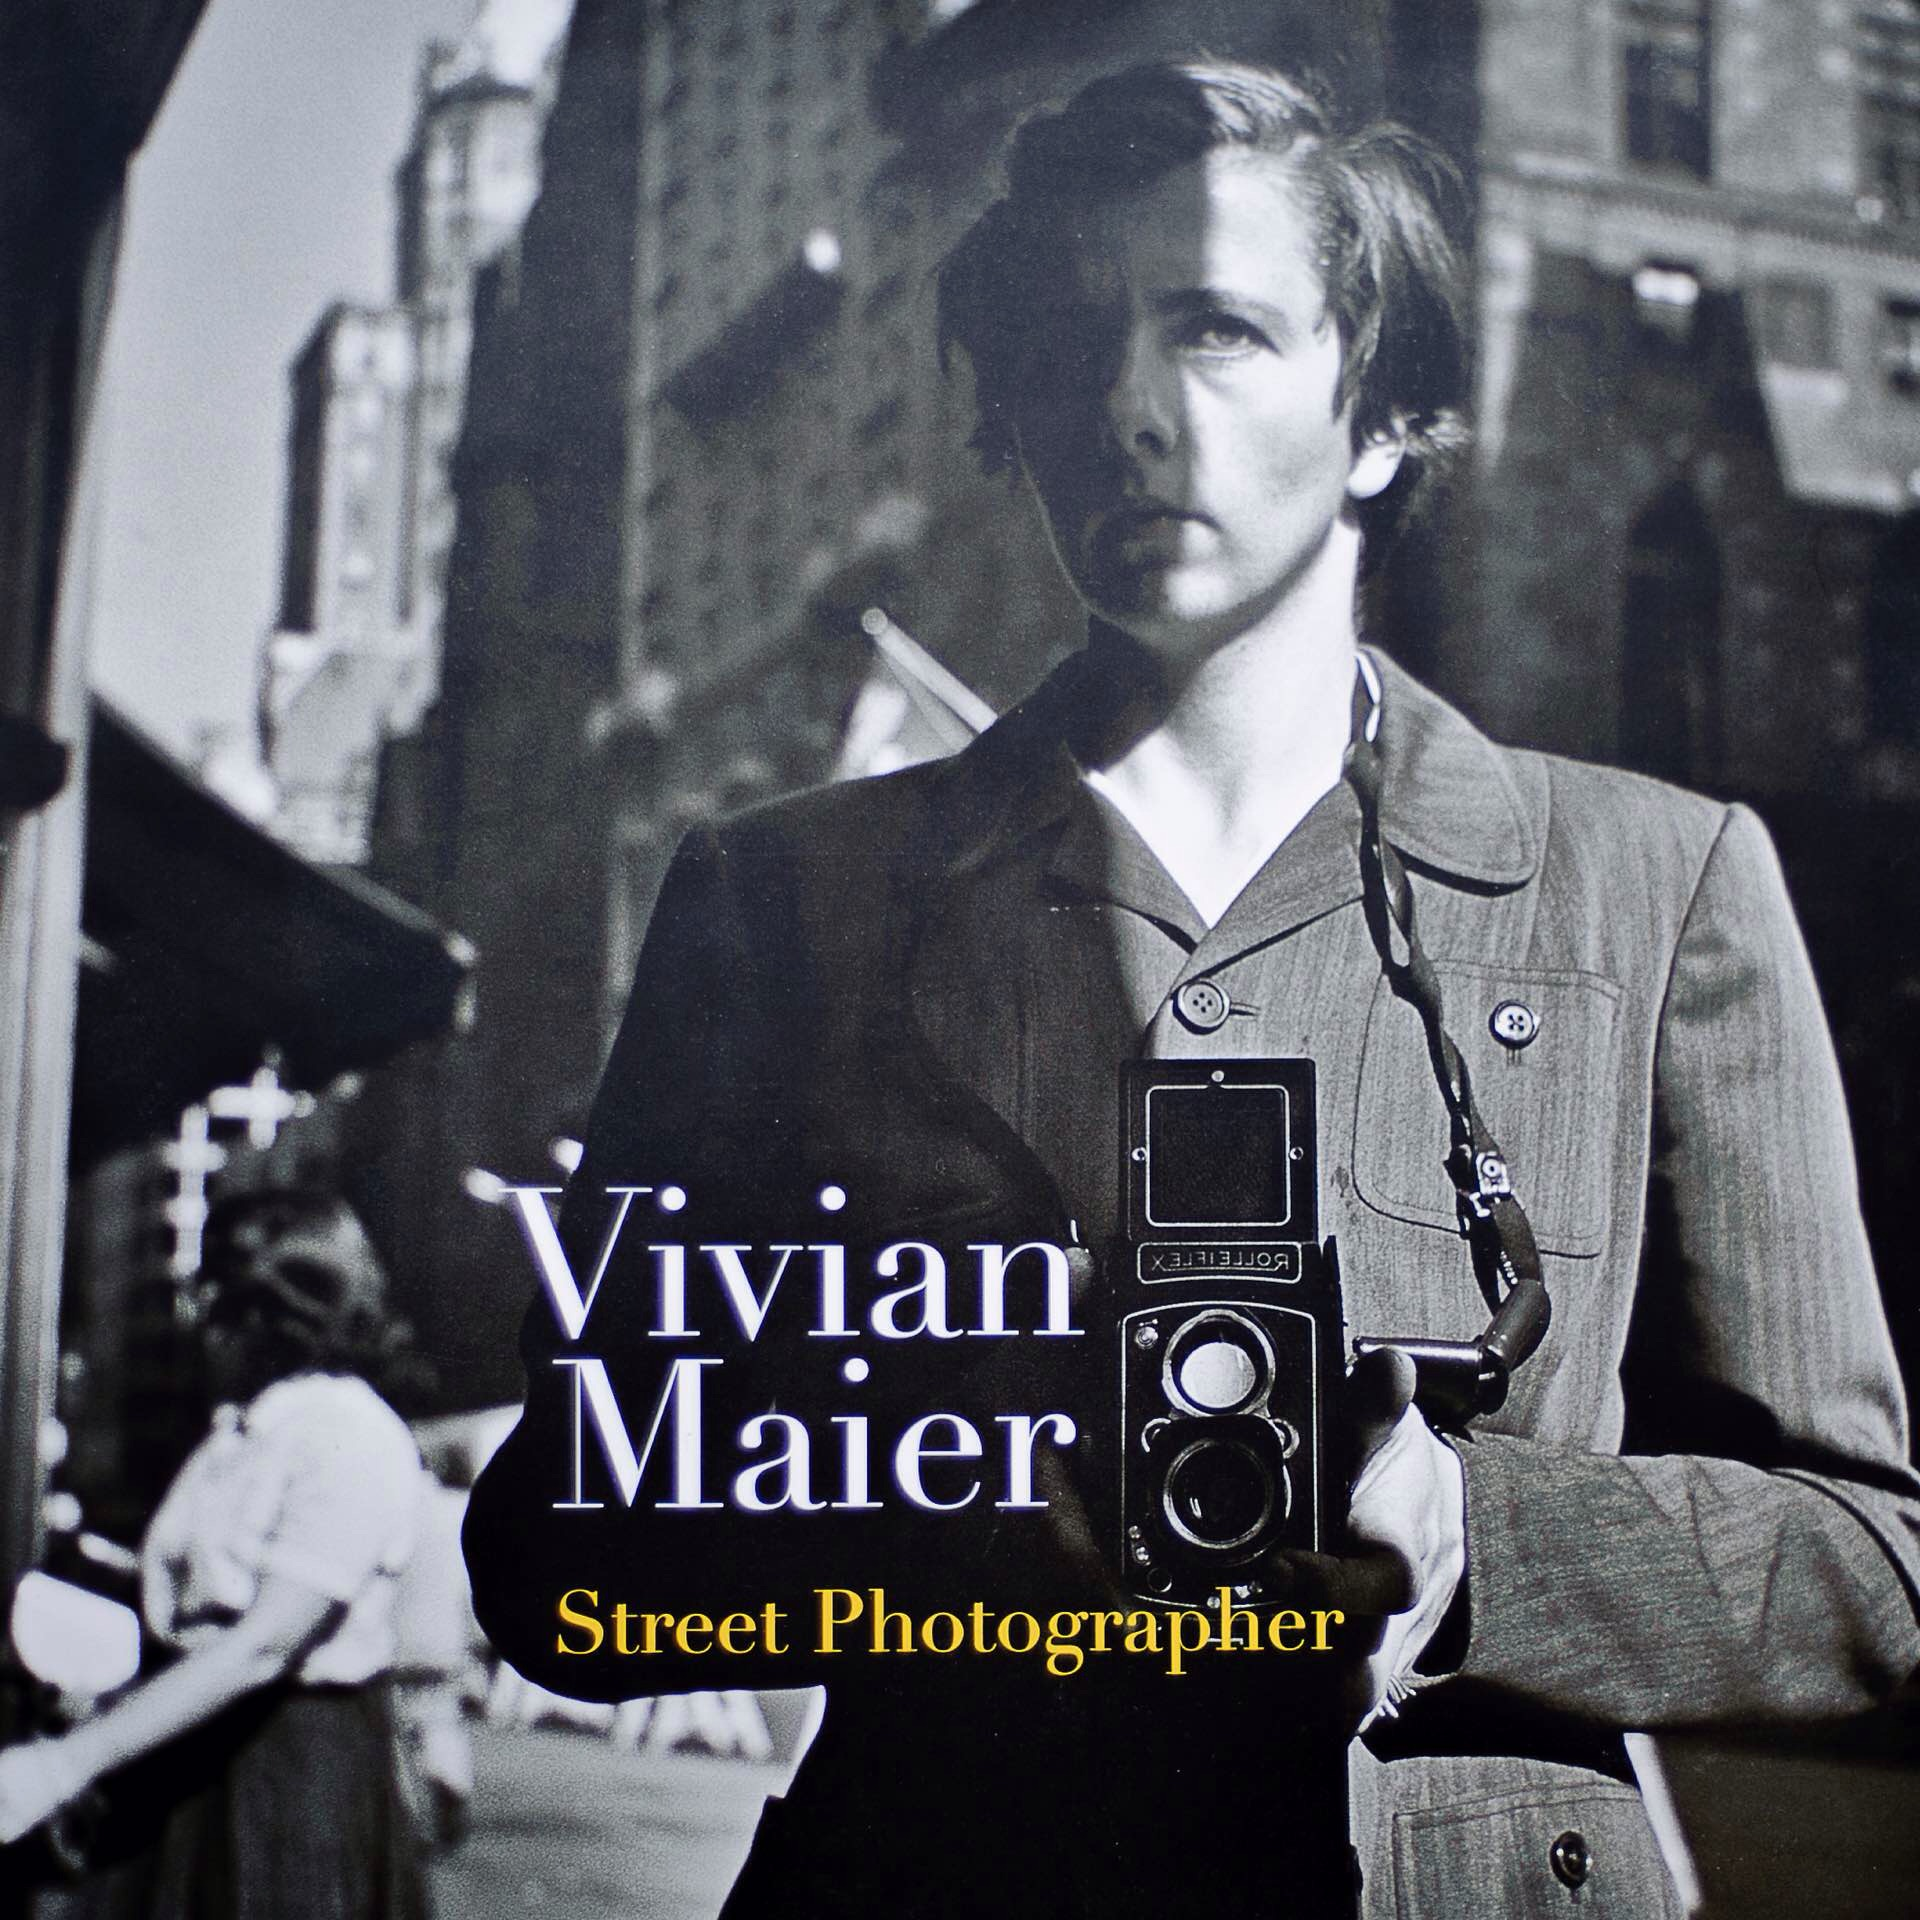 Vivian Maier: Street Photographer by John Maloof and Geoff Dyer